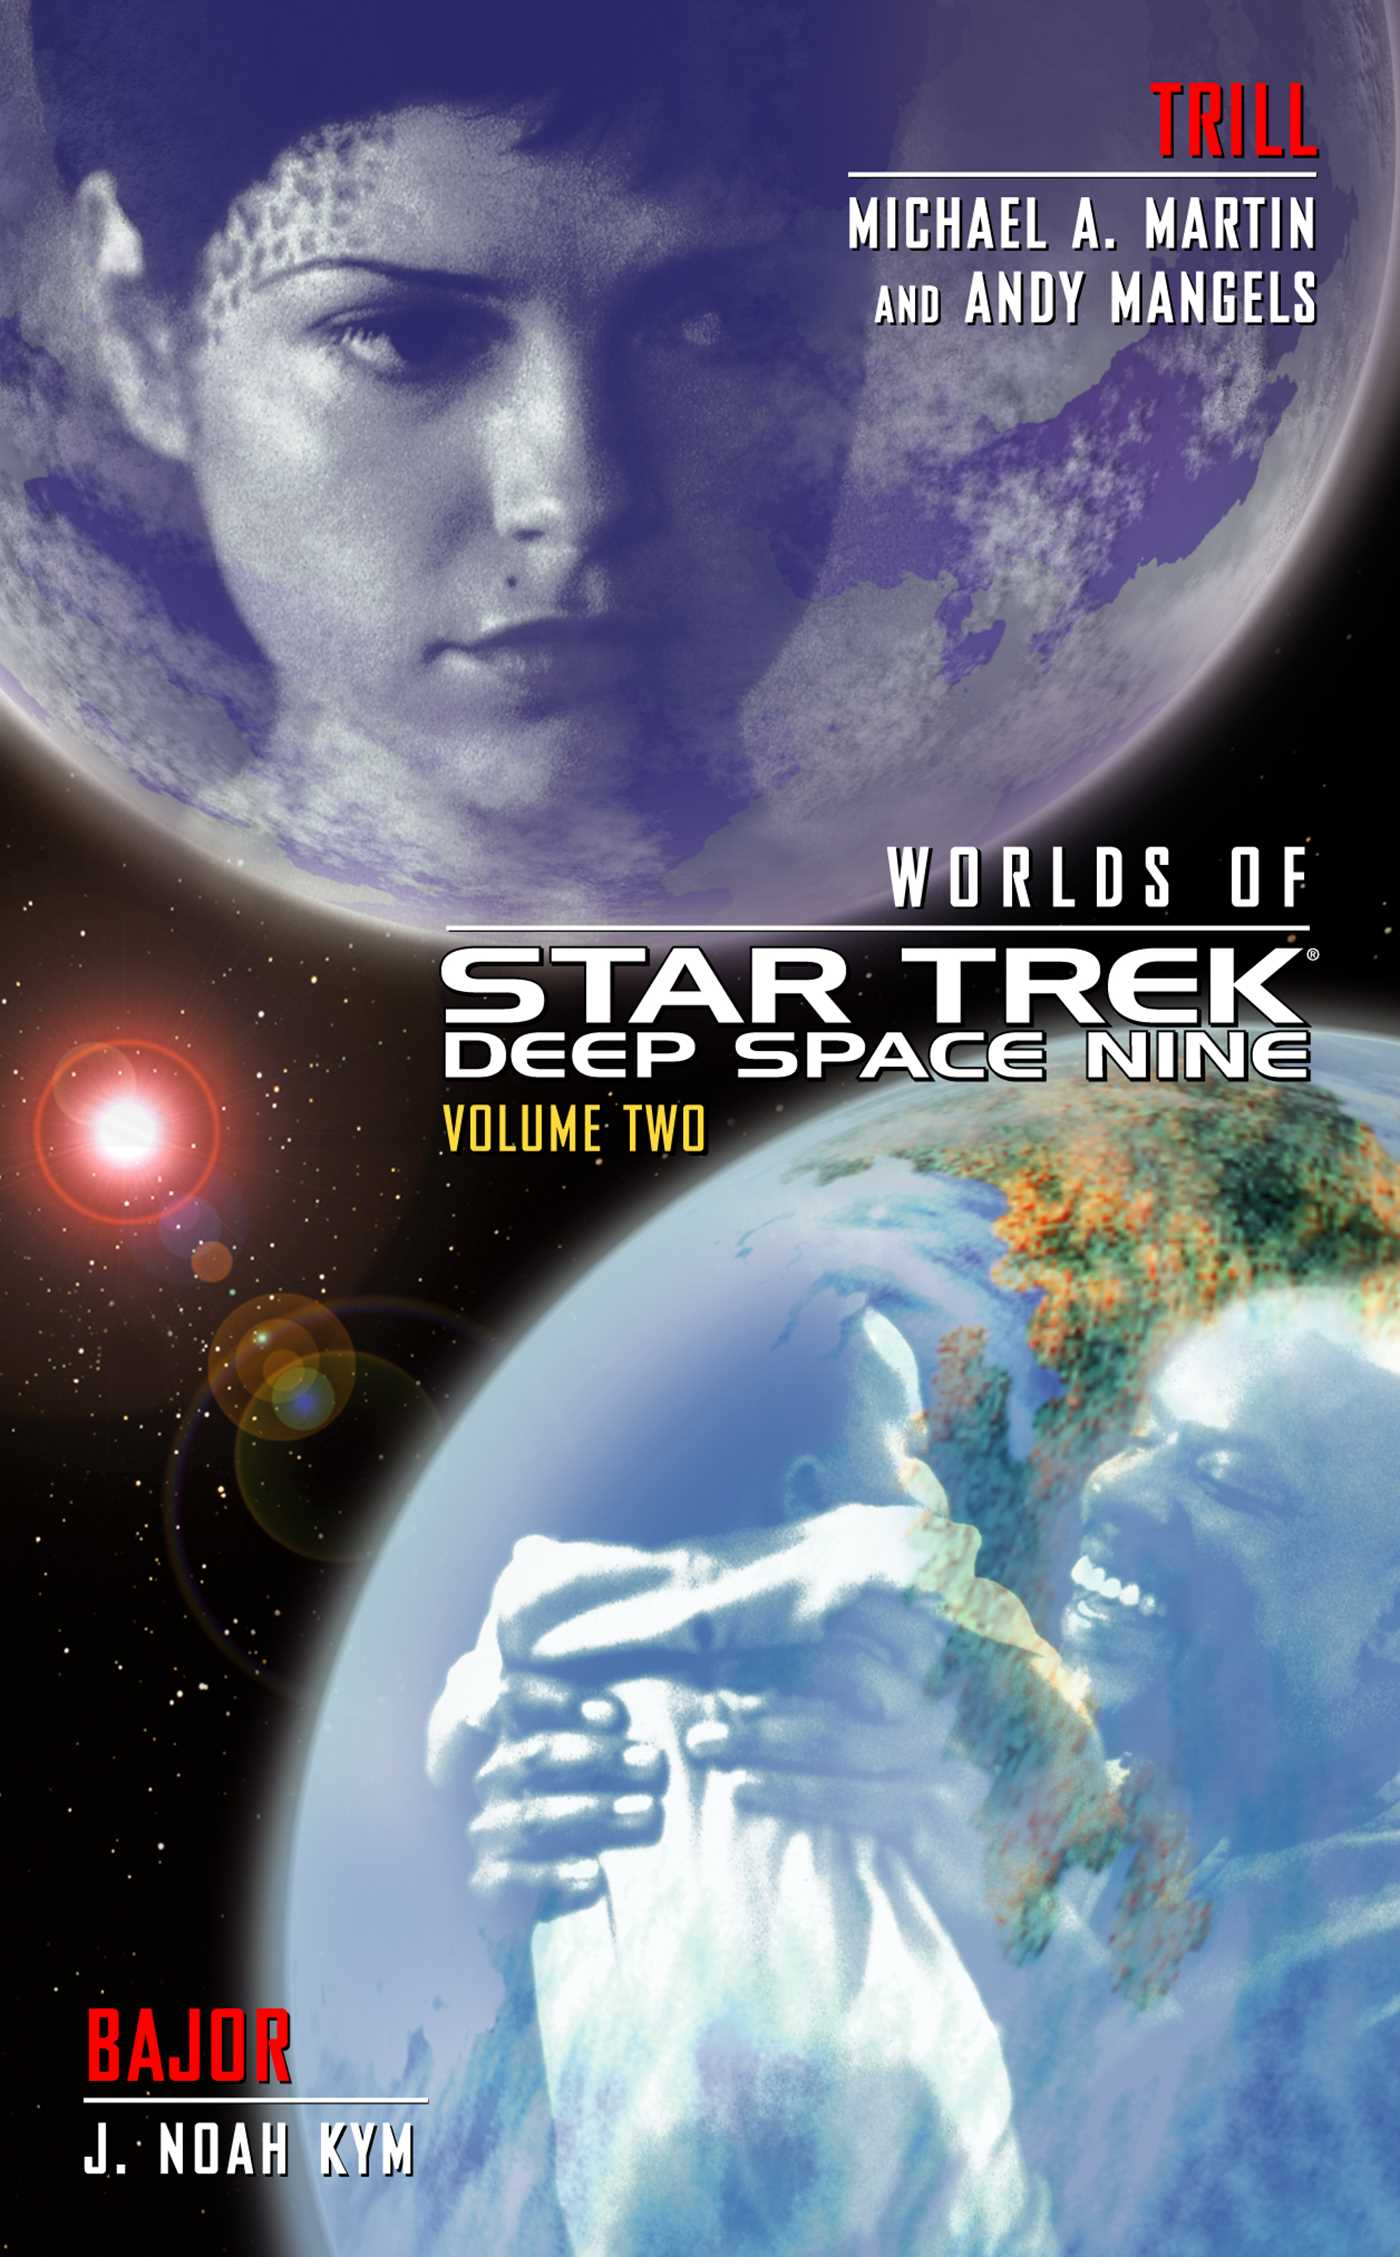 Star-trek-deep-space-nine-worlds-of-deep-space-nine-2-9780743489034_hr